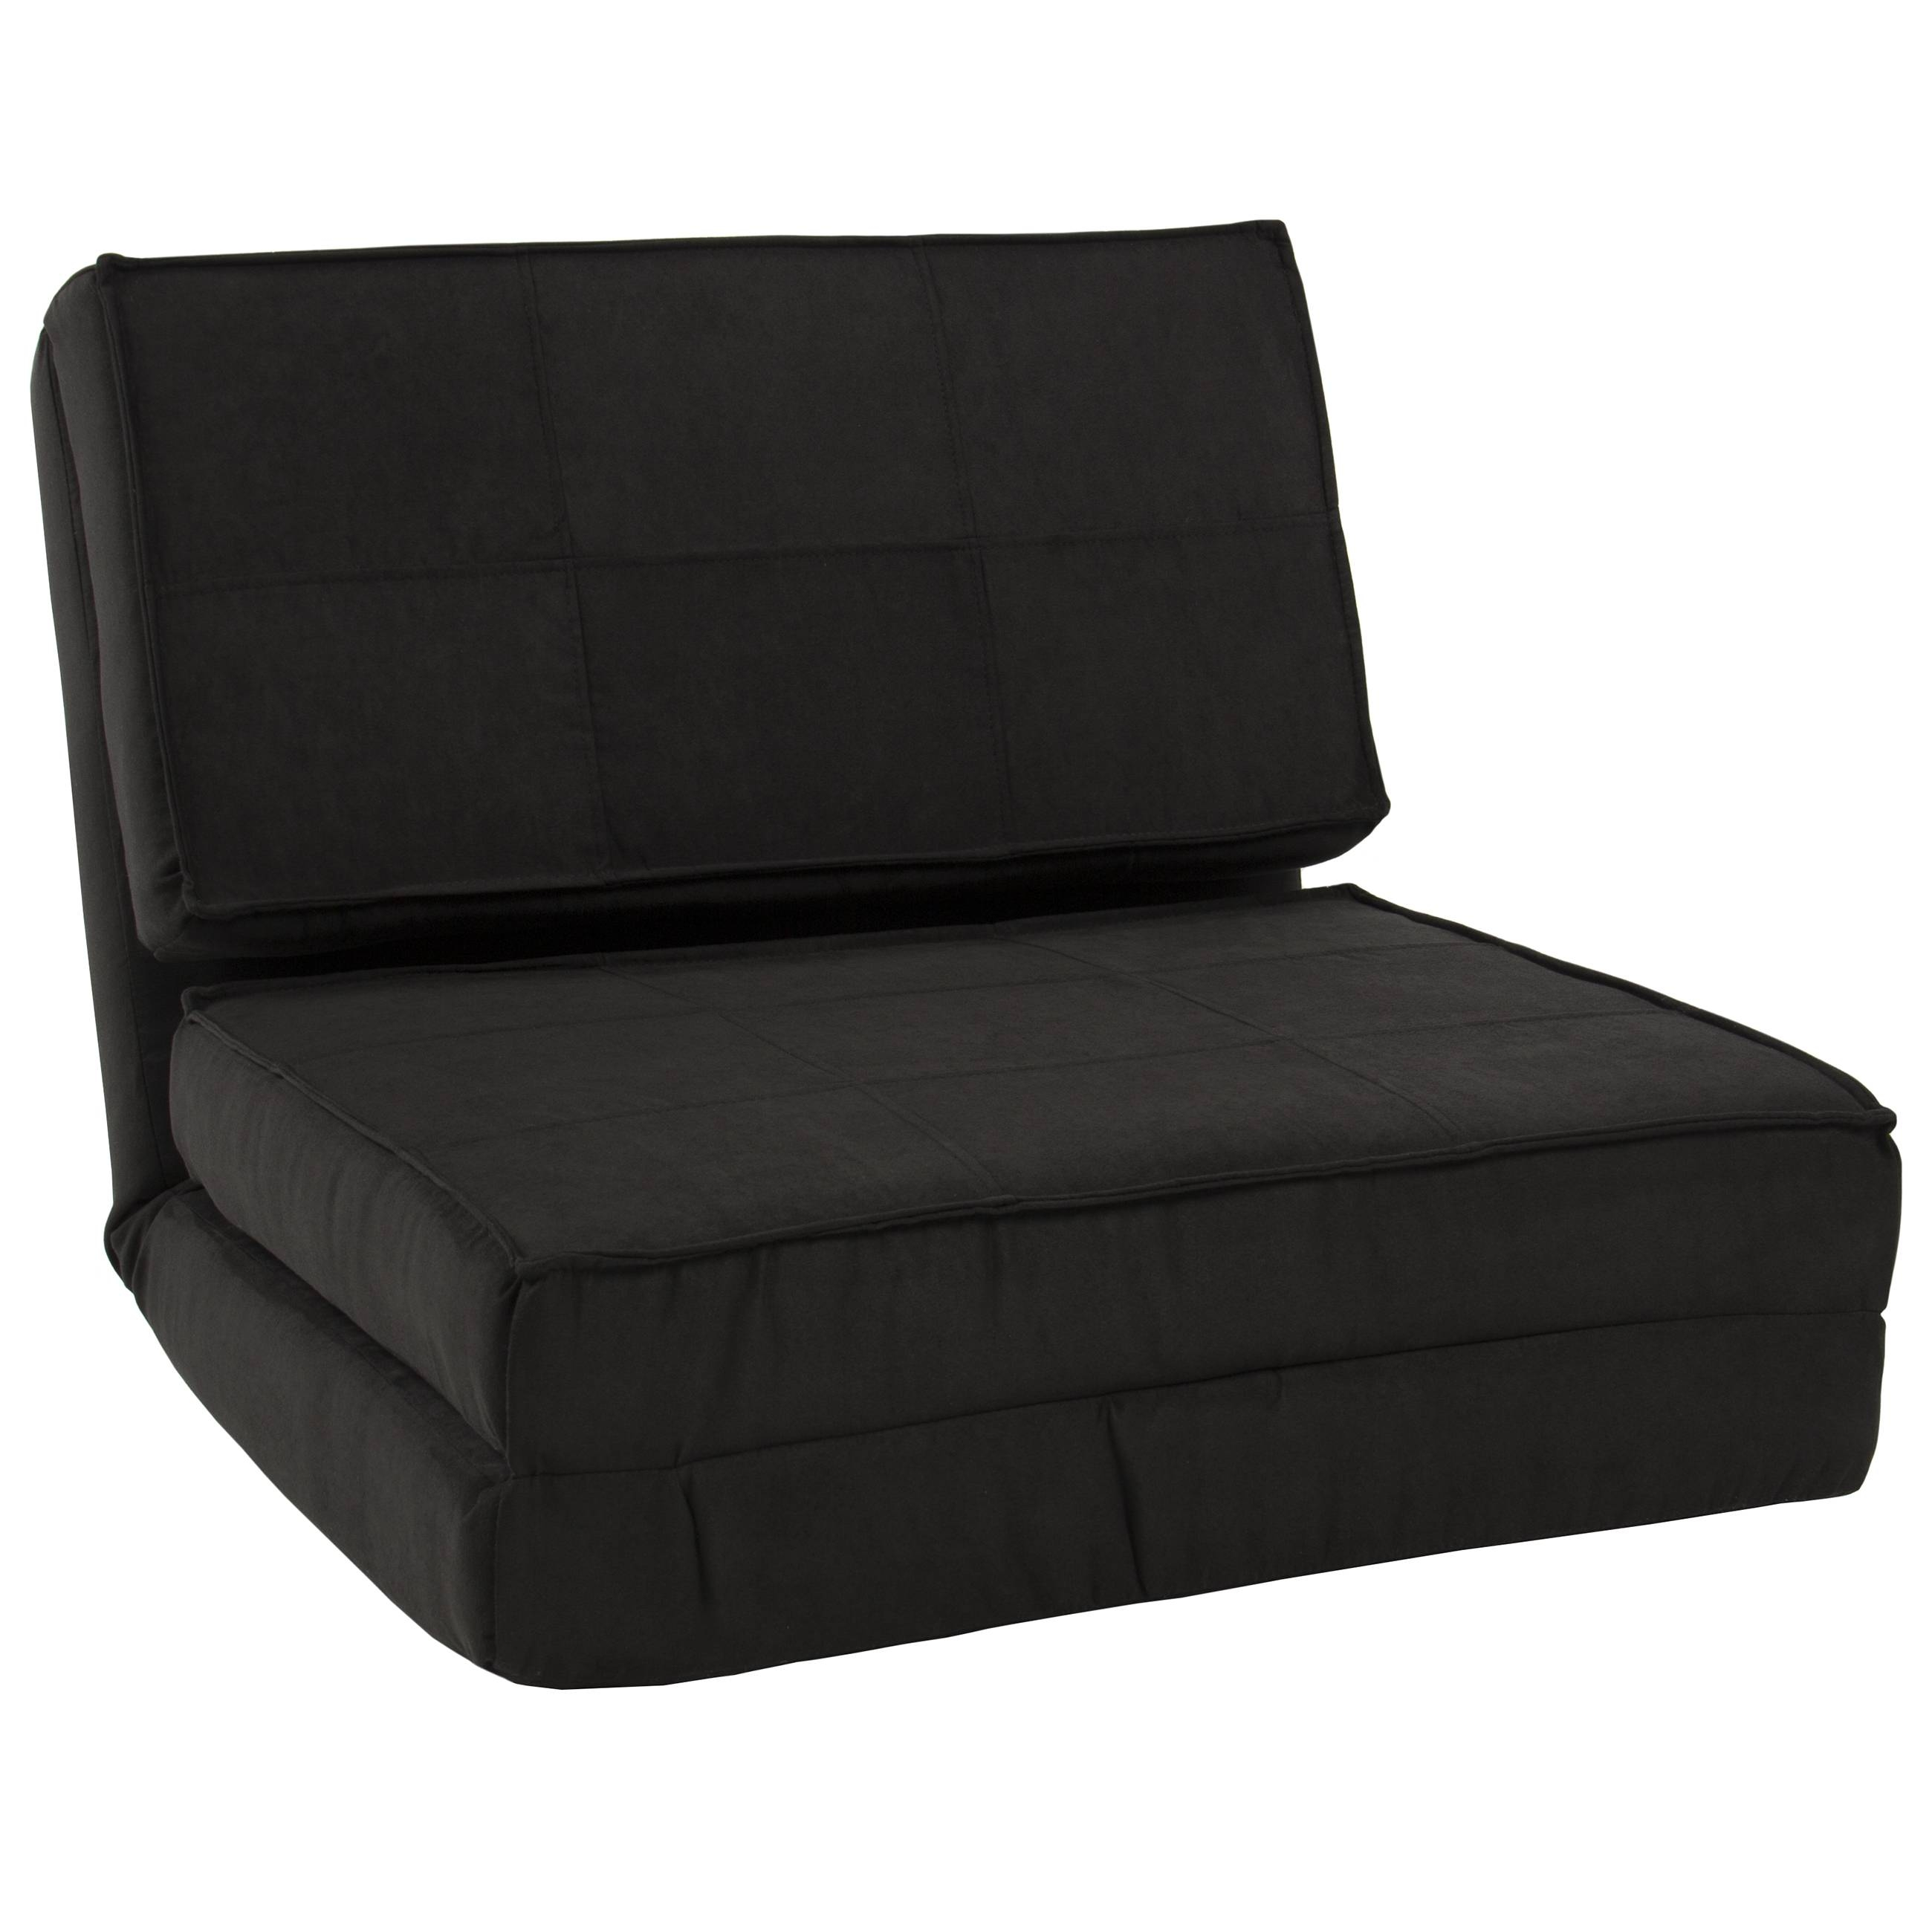 Best Choice Products Convertible Sleeper Chair Bed (Black pertaining to Folding Sofa Chairs (Image 5 of 30)